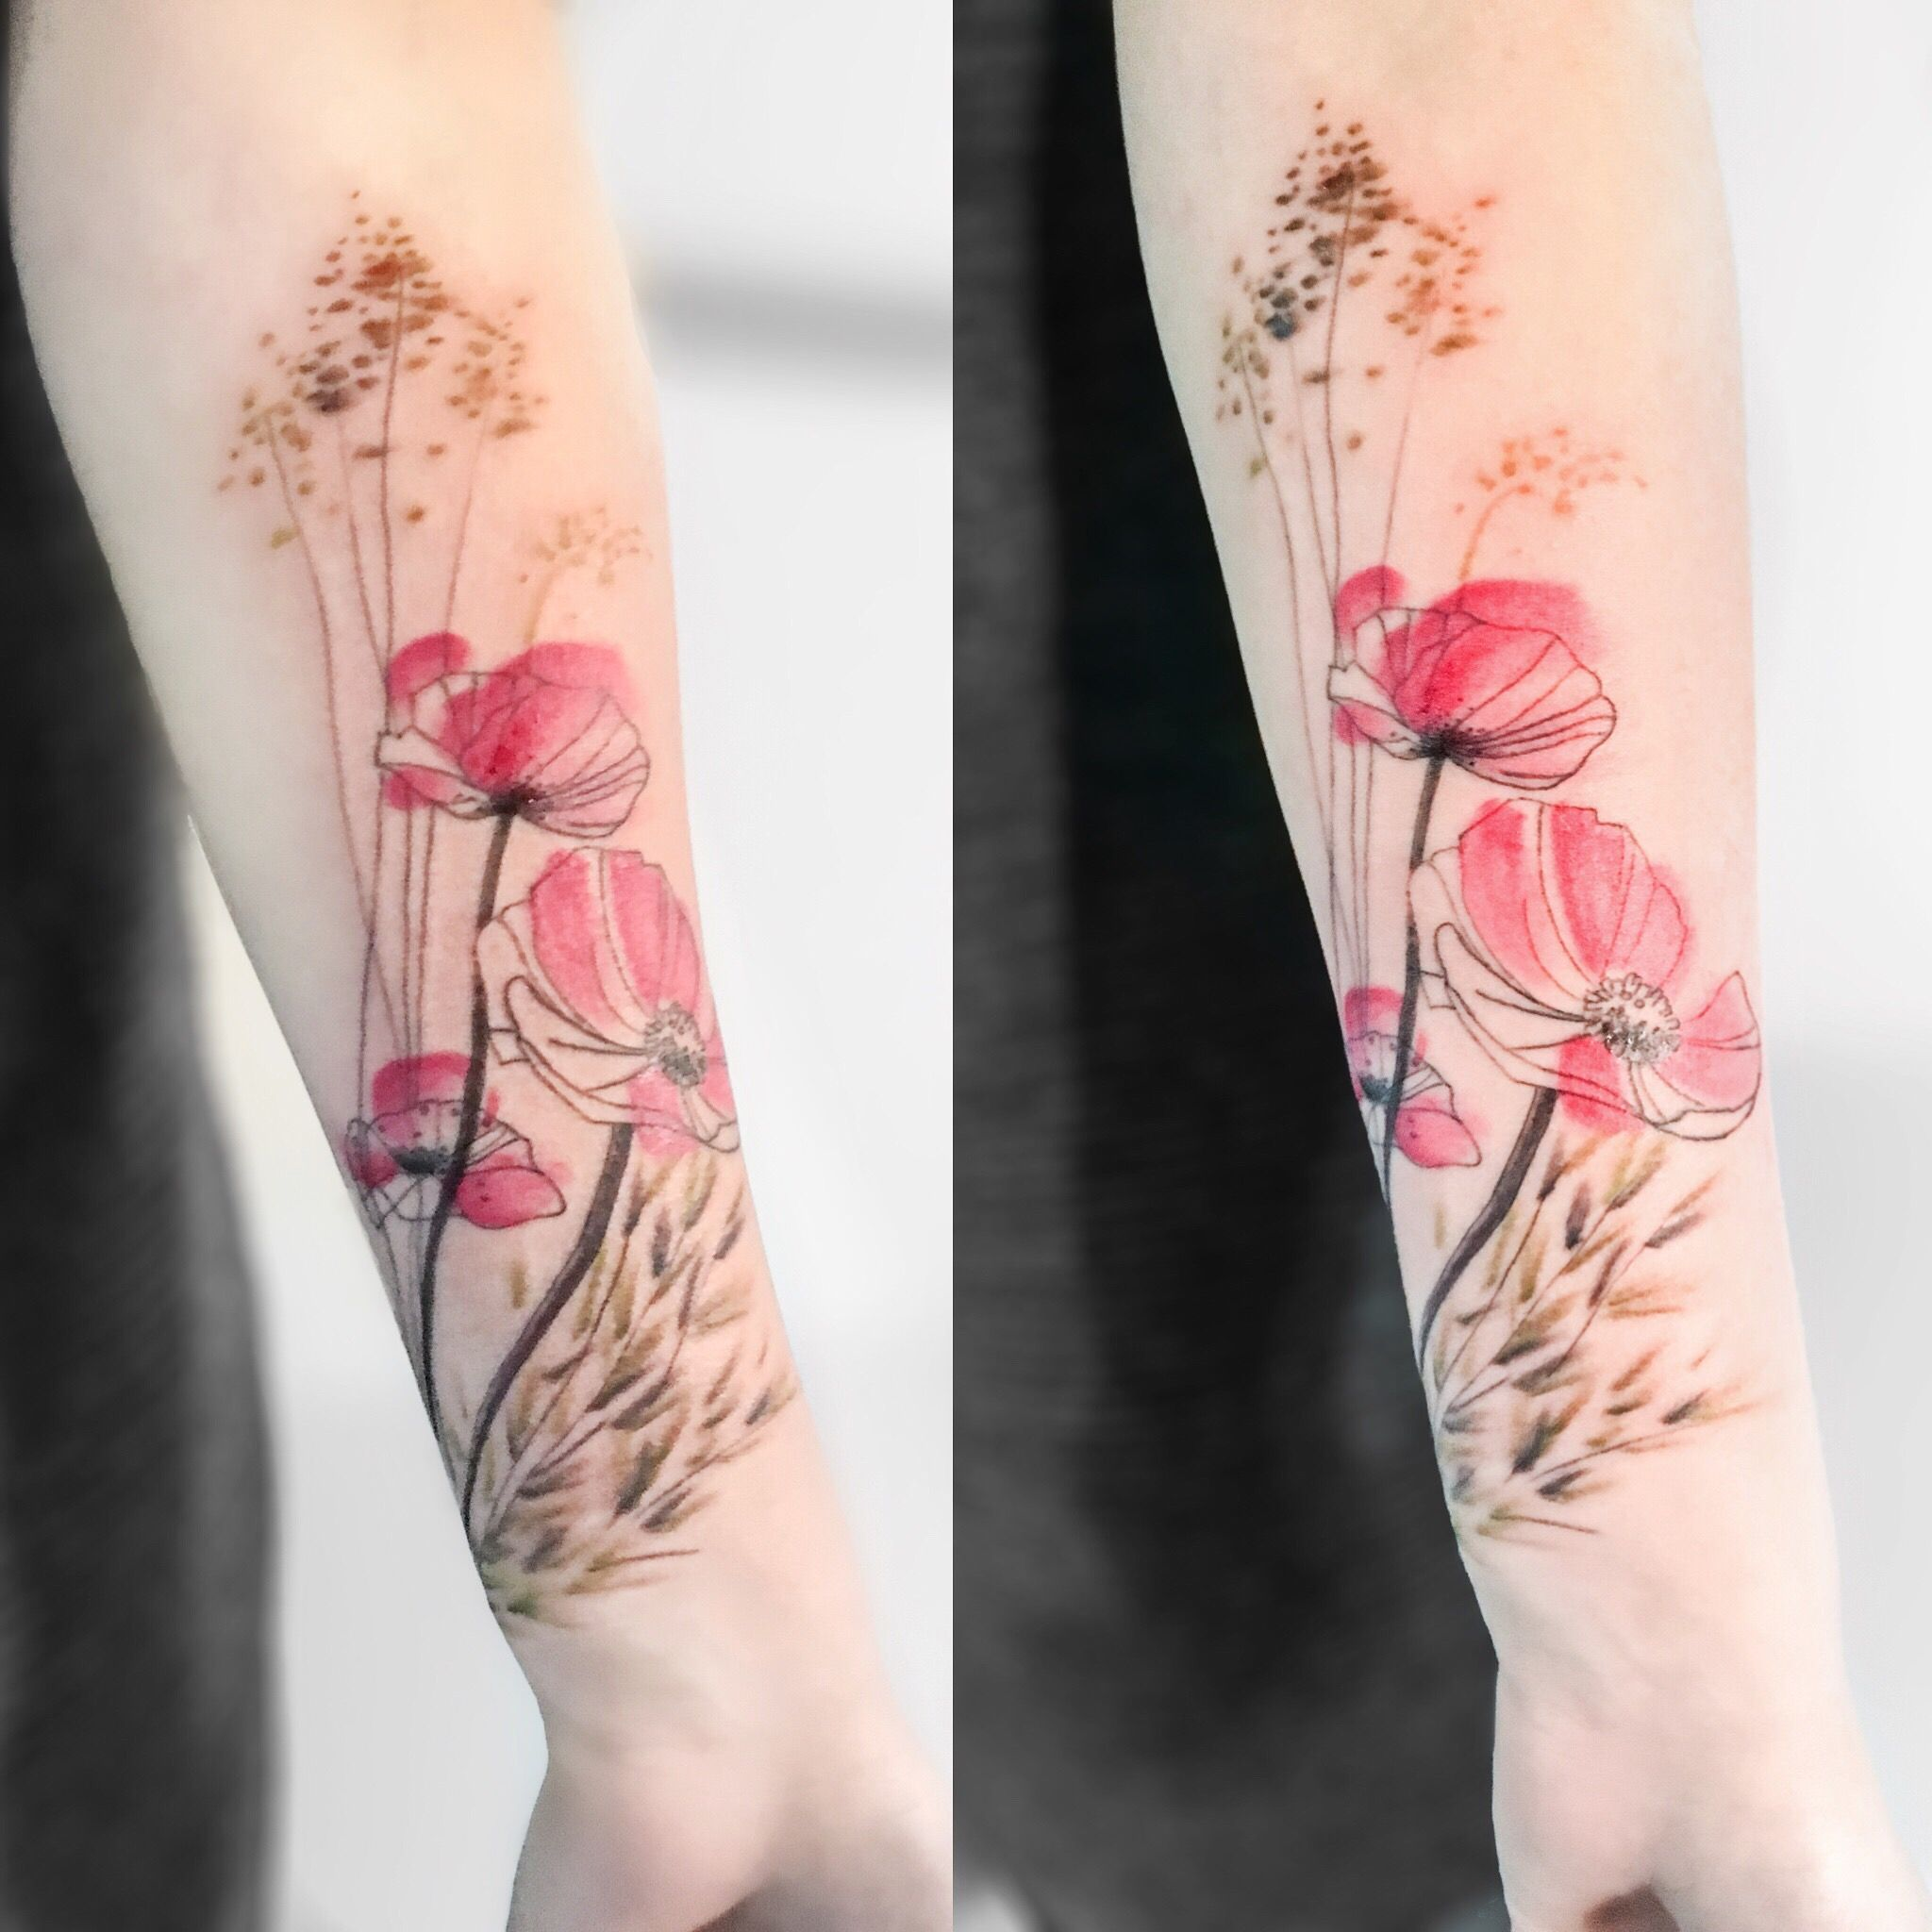 Mohnblumen Tattoo Poppy Flower Tattoo Flower Tattoo Blumen Und Graser Watercolortattoo Aquarelltattoo Mohnblumen Tattoo Haut Tattoo Mohn Blume Tattoo